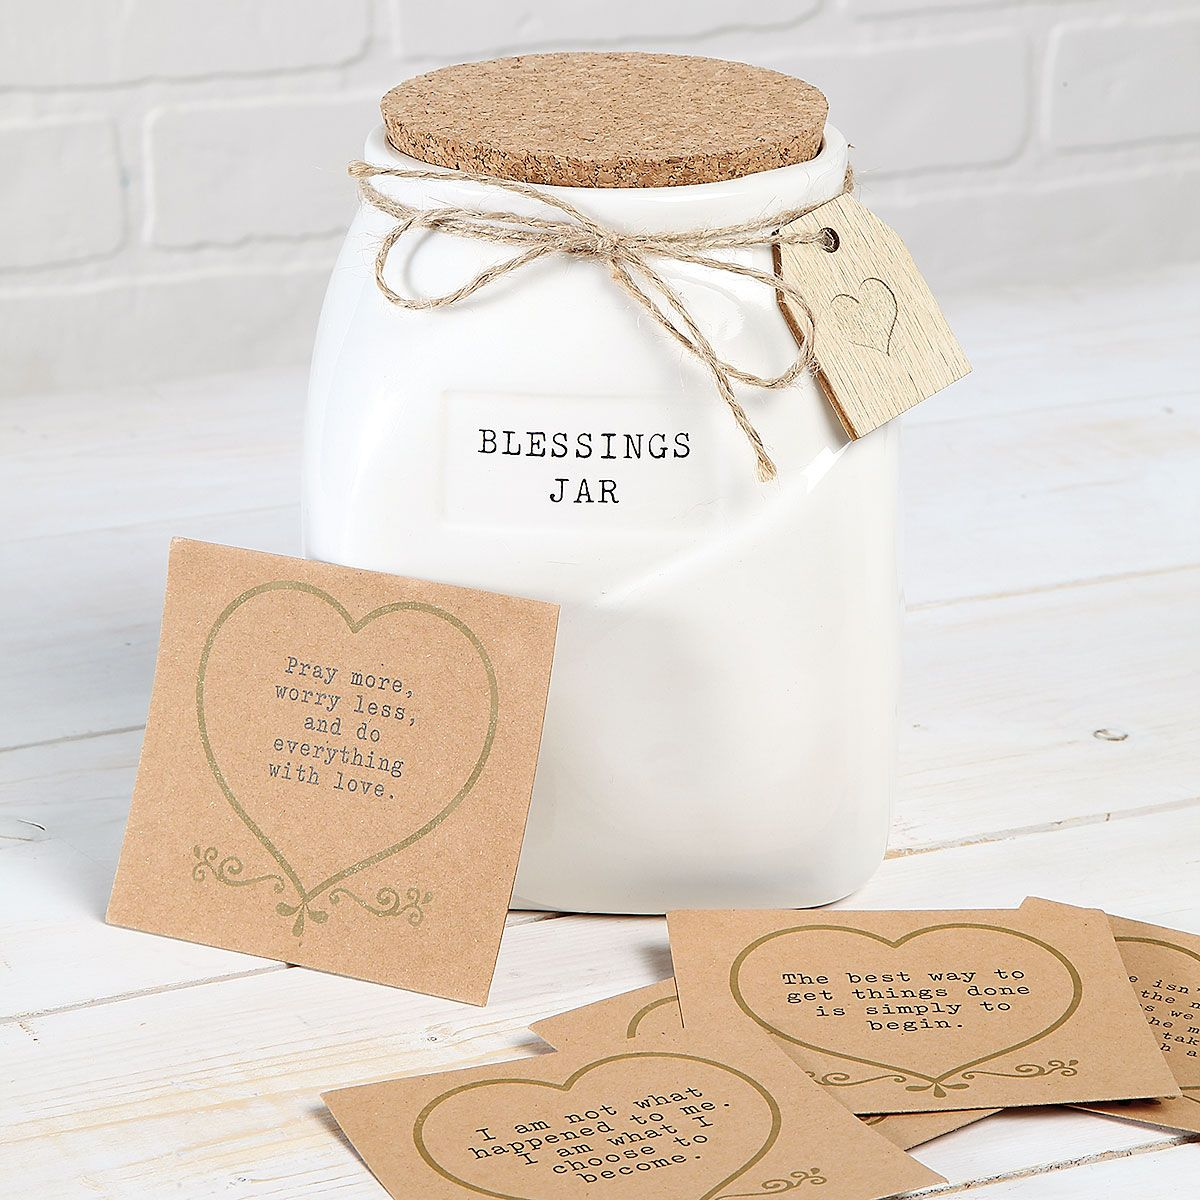 Blessings Jar with Cards